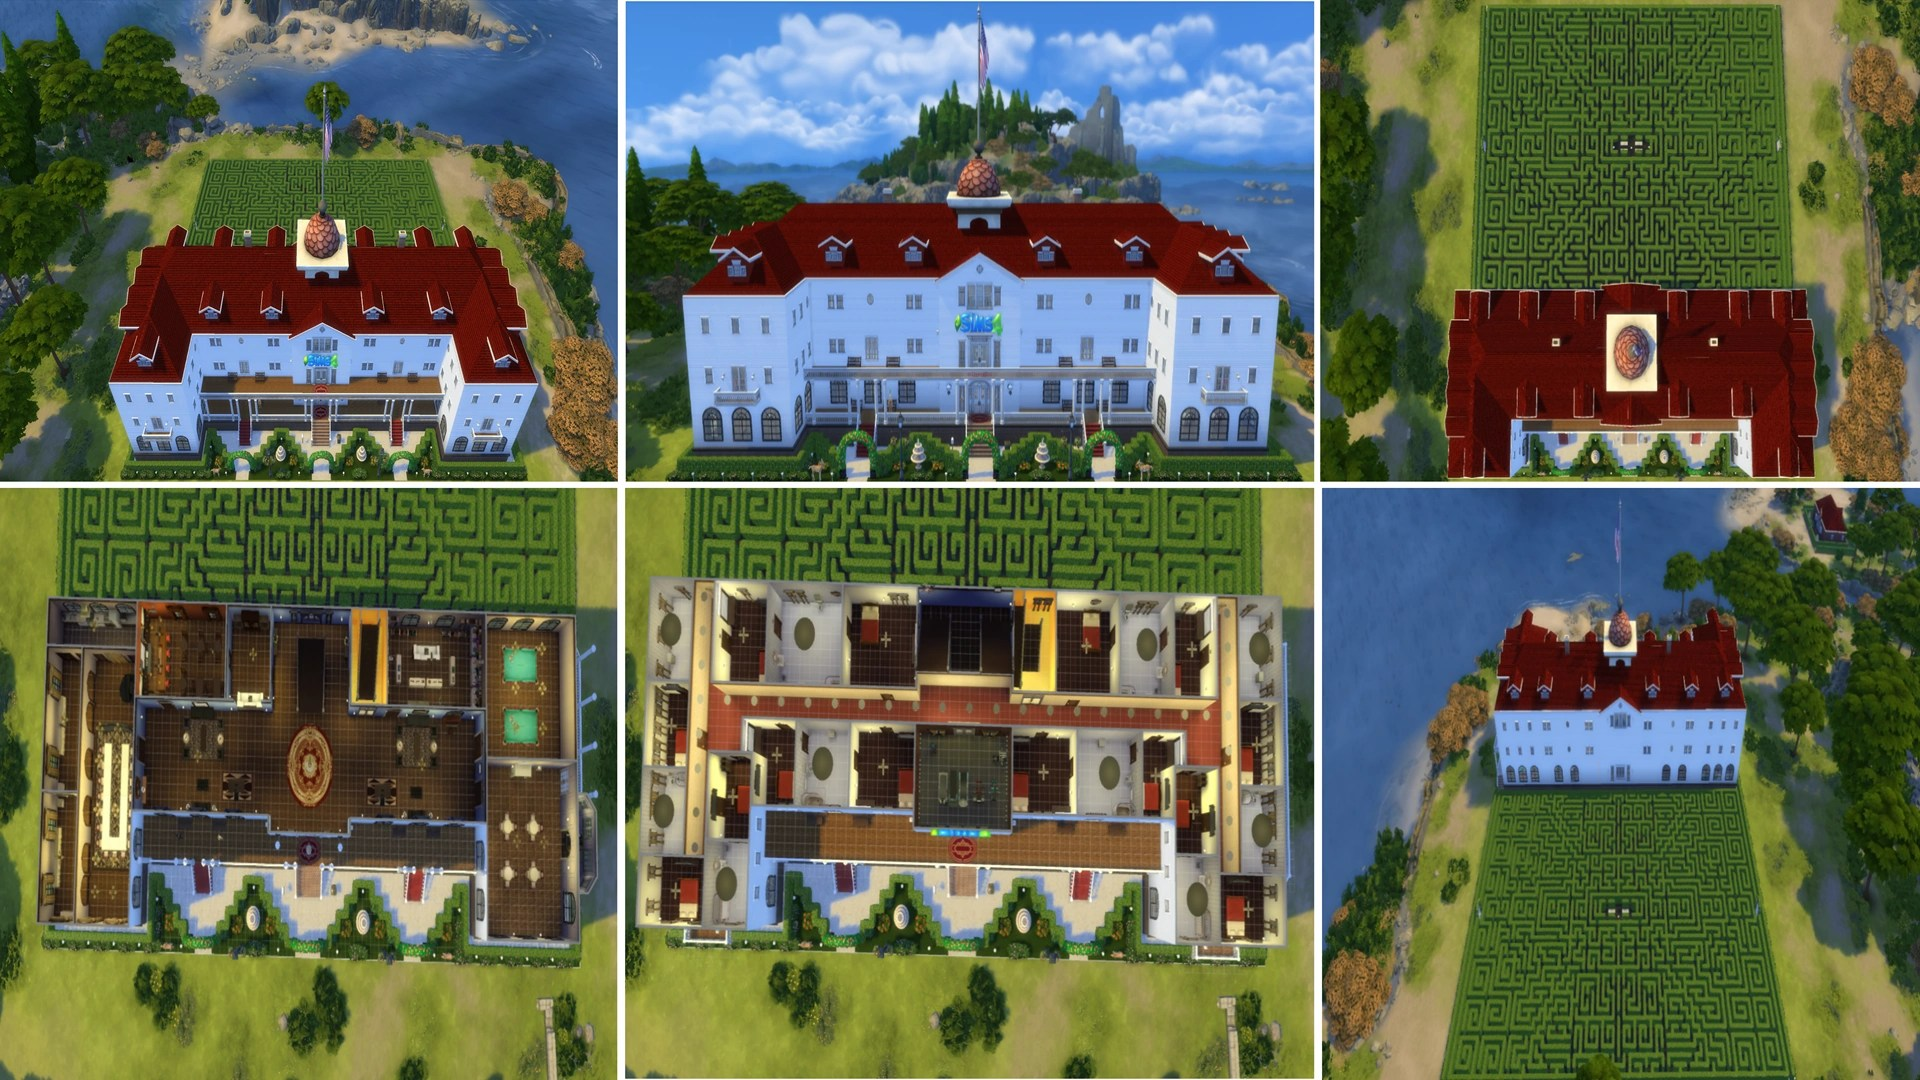 Stanley Hotel The Sims